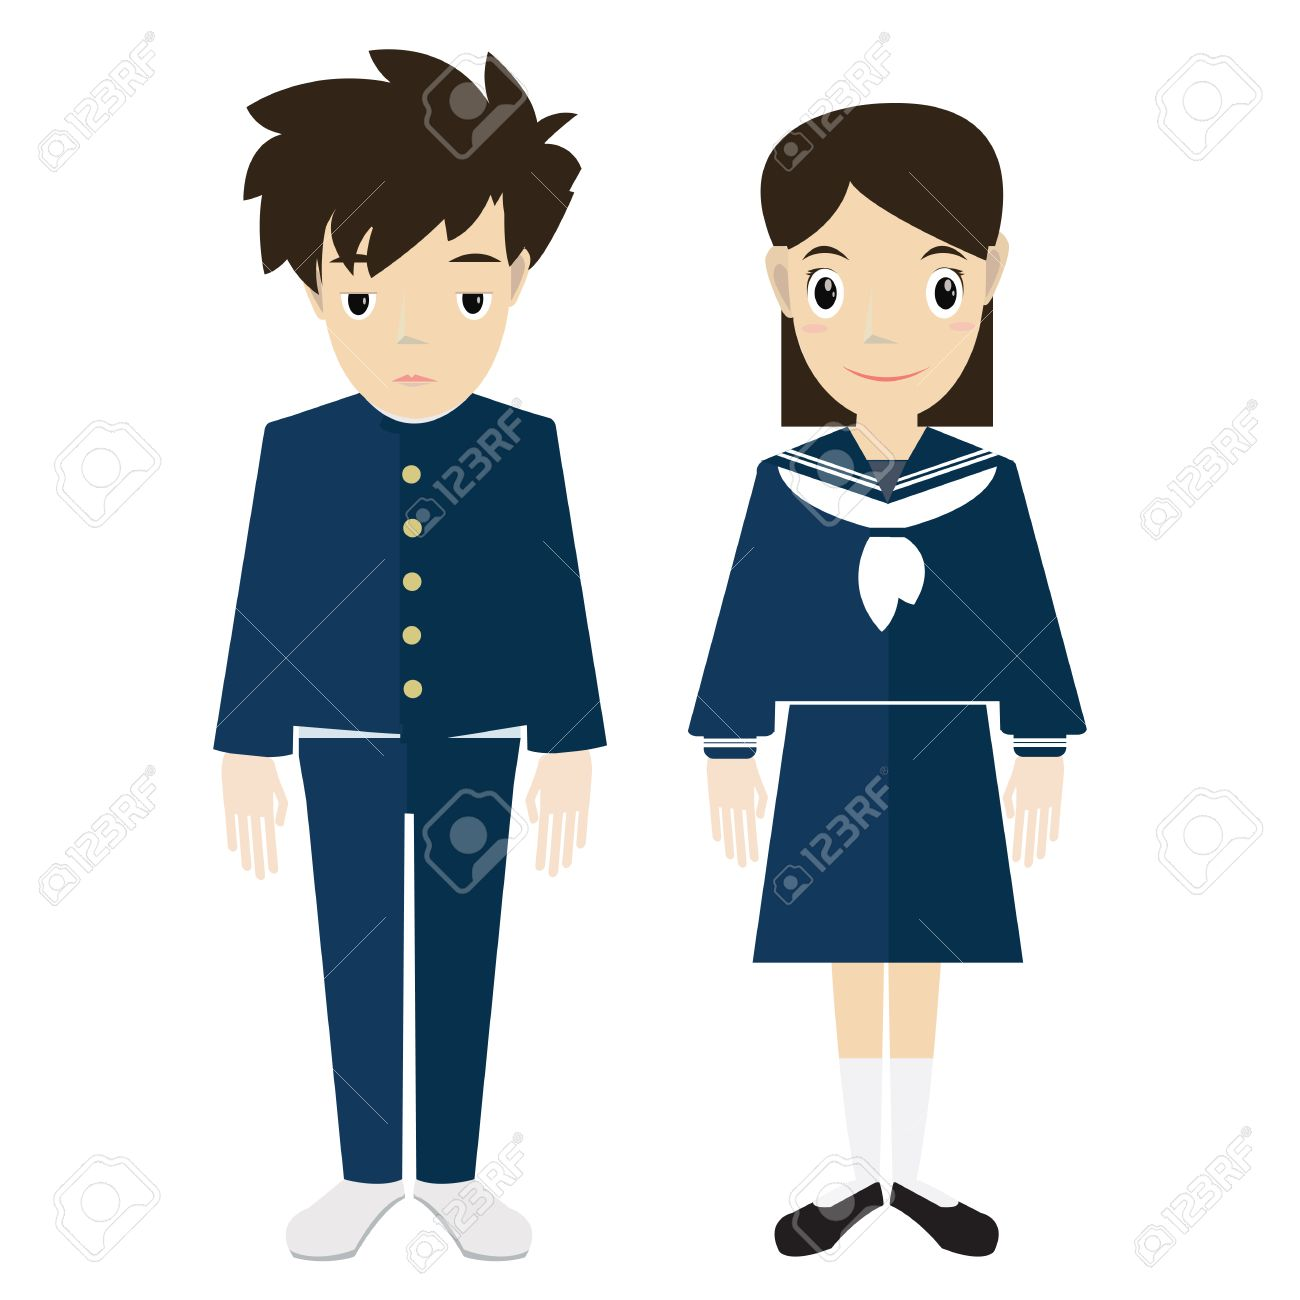 3932 Uniform free clipart.